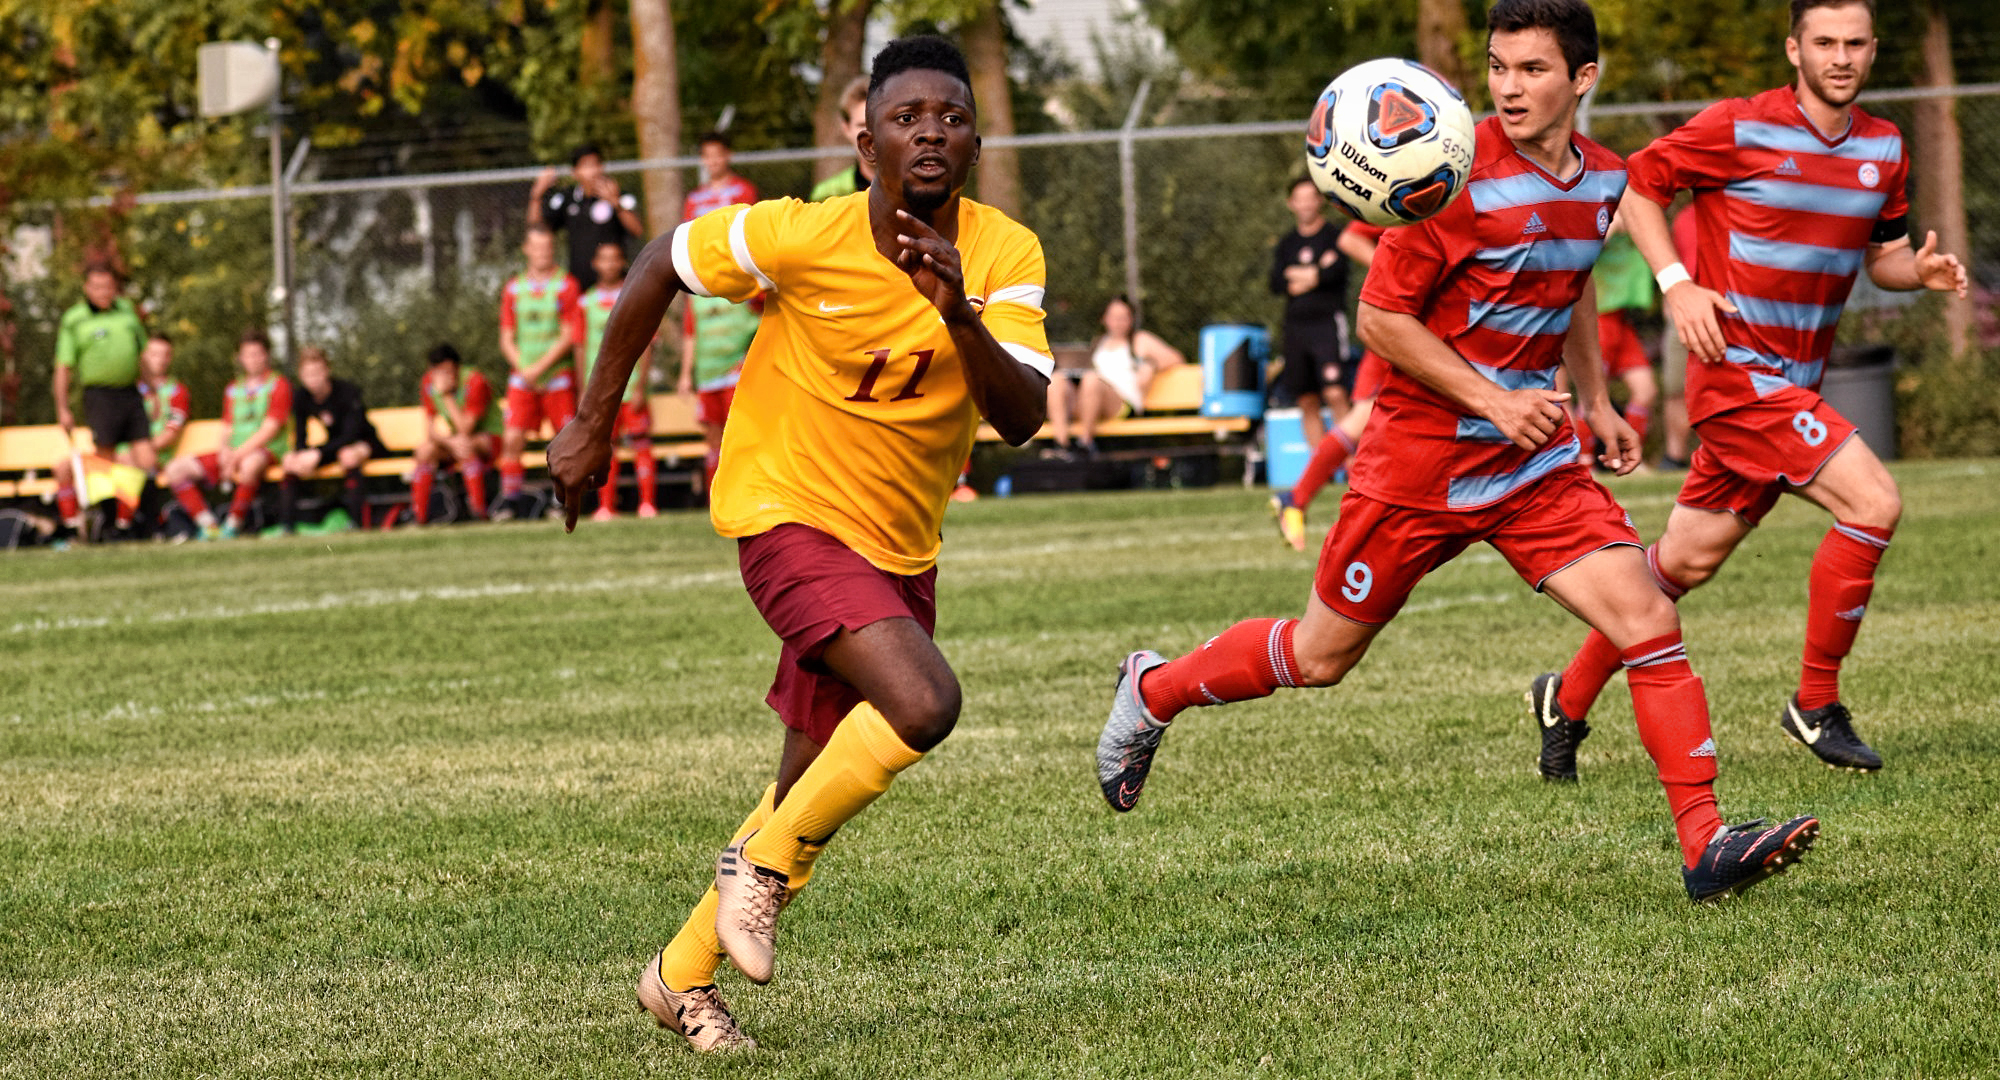 Concordia senior Roland Oyou scored the Cobbers' lone goal in their game at Gustavus. (Photo courtesy of Maddy Reed)